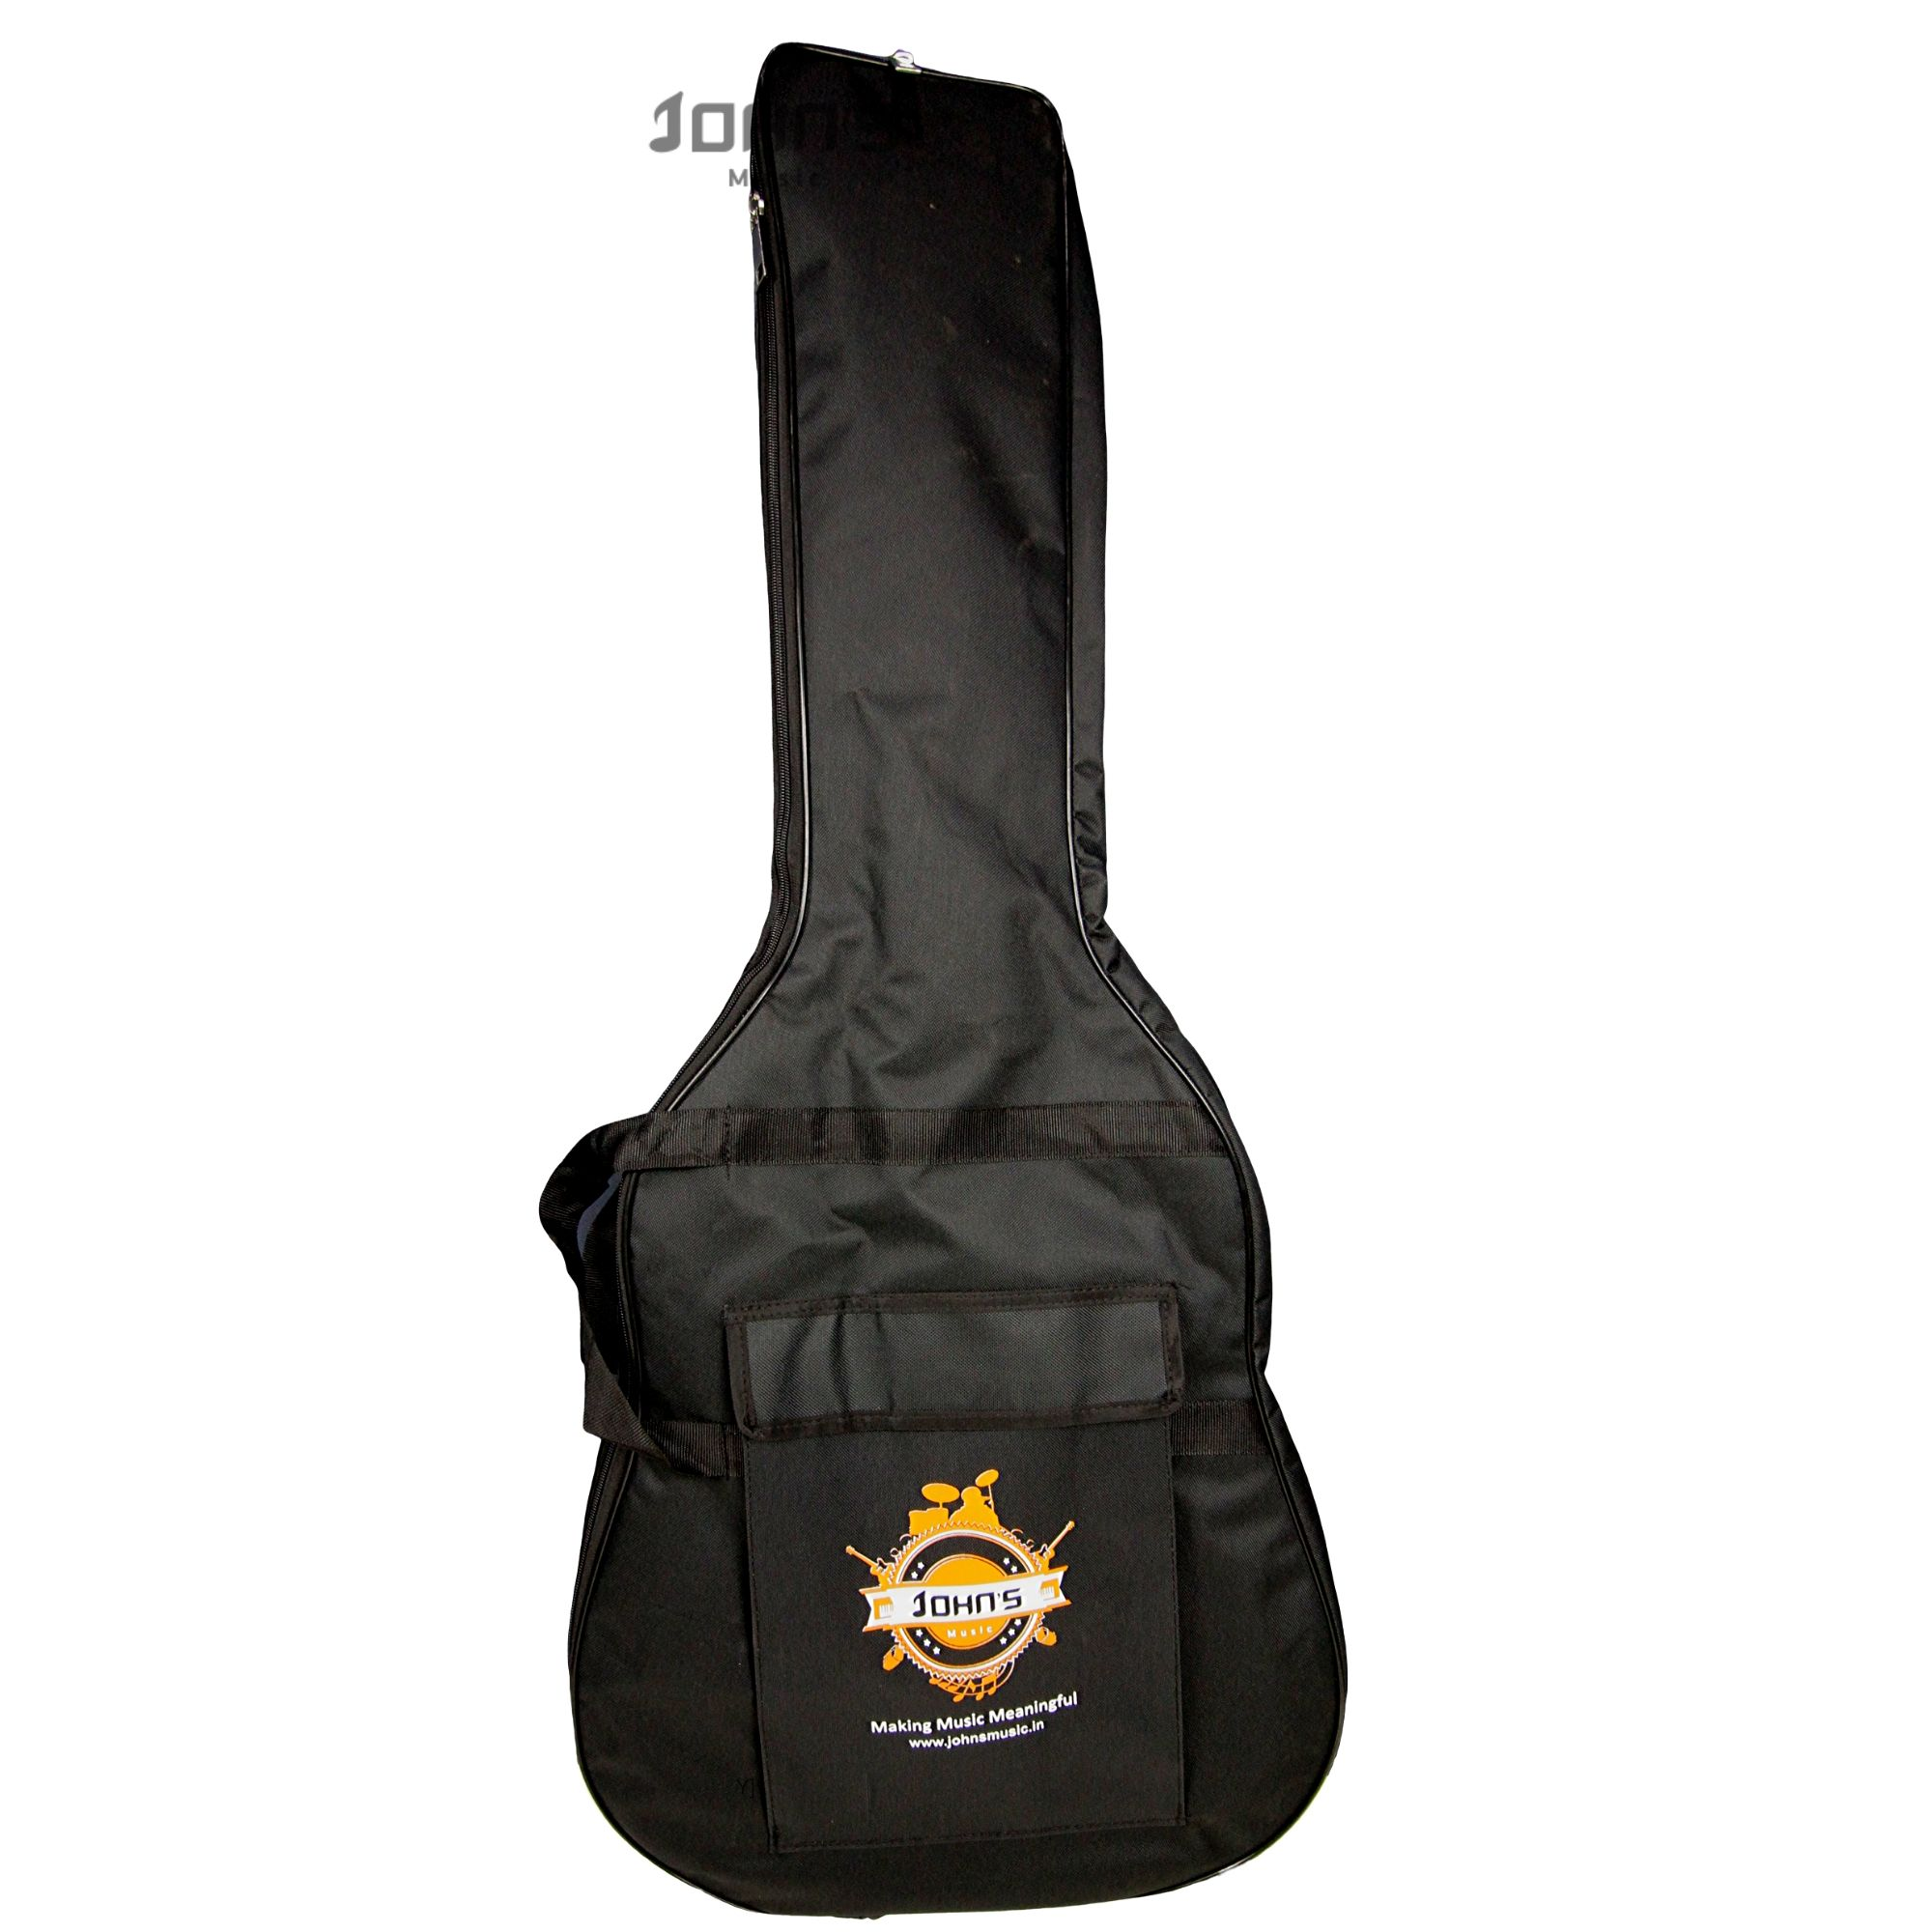 Acoustic guitar bag for all guitars